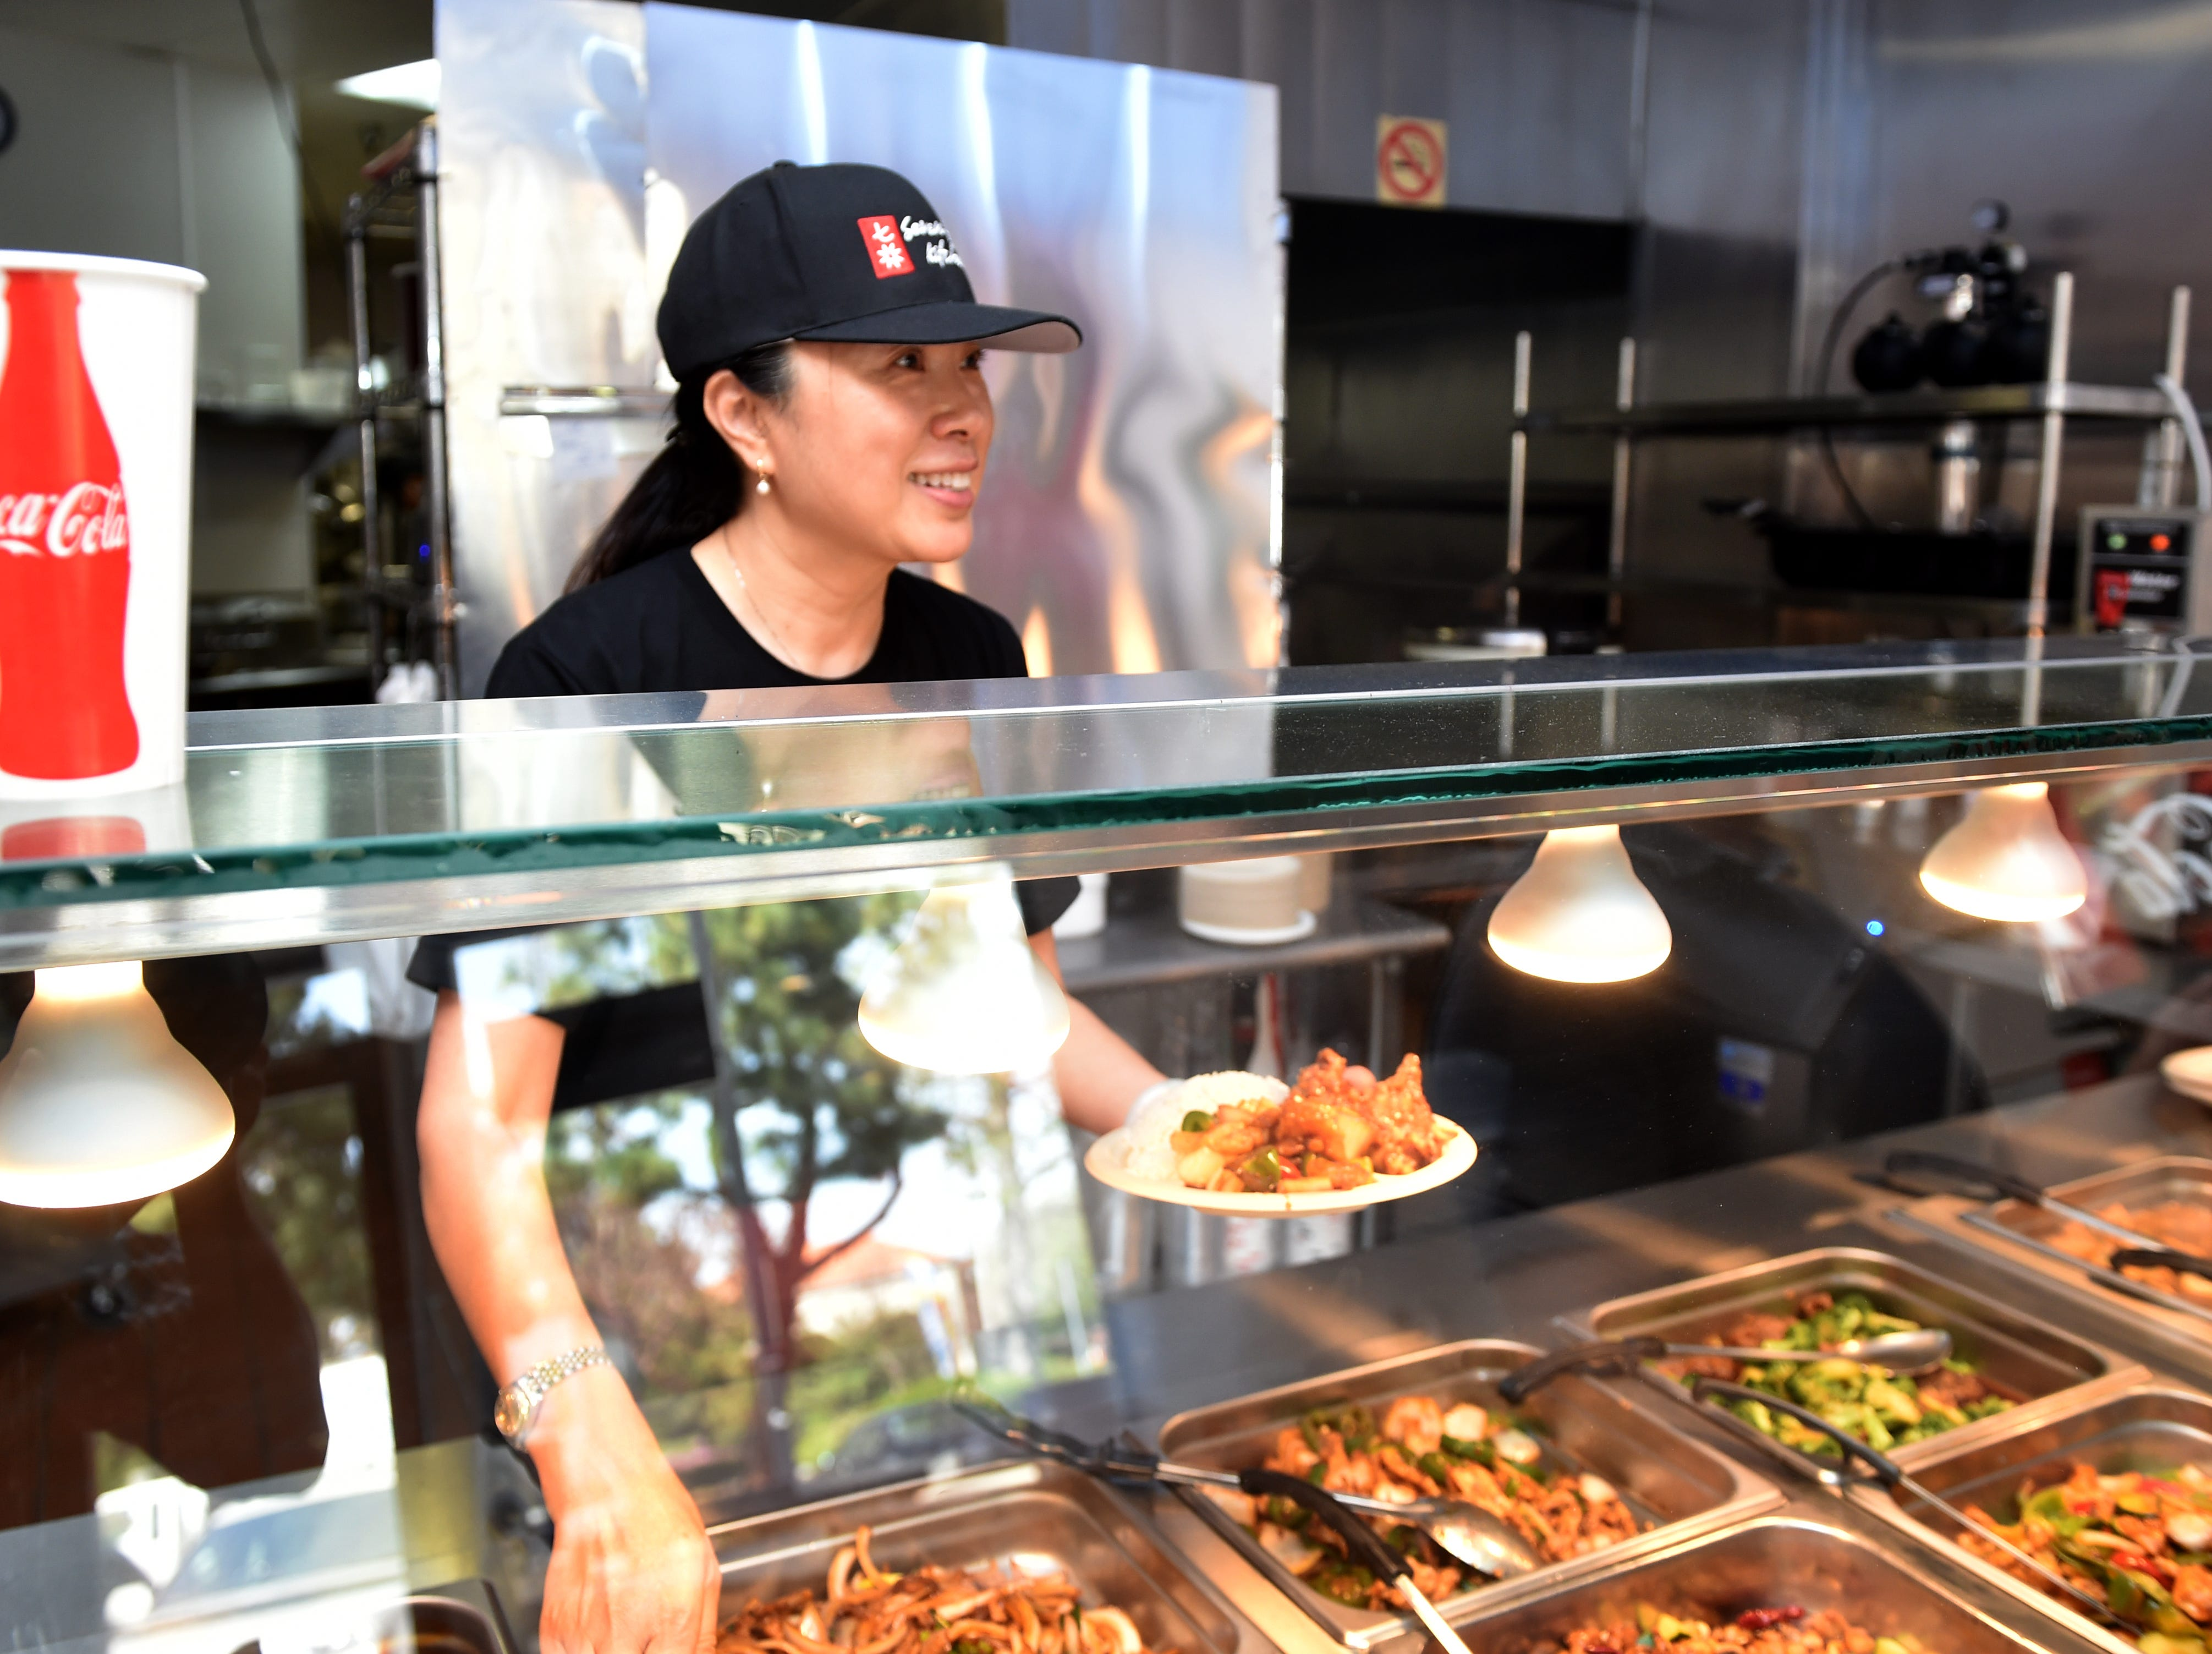 Jennifer Dong, who along with husband Paul owns of Seven Spice Kitchen in Newbury Park, prepares a lunch order on Monday.